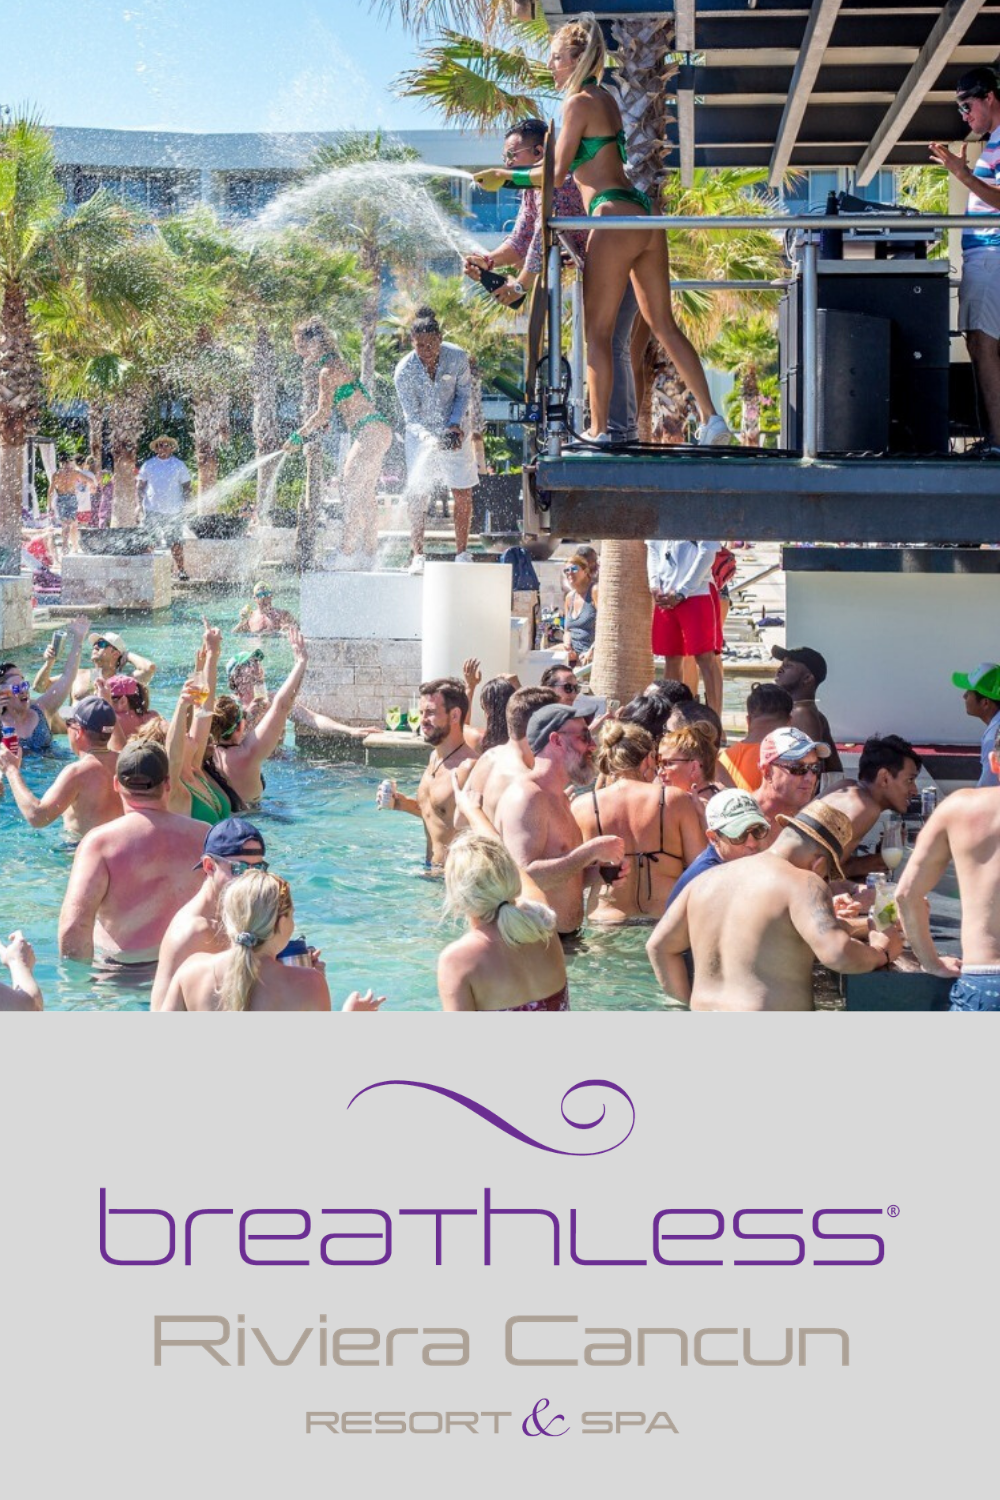 Hands Down The Pool Parties At Breathless Riviera Cancun Are The Best Around Riviera Cancun Resort Riviera Cancun Cancun Resorts